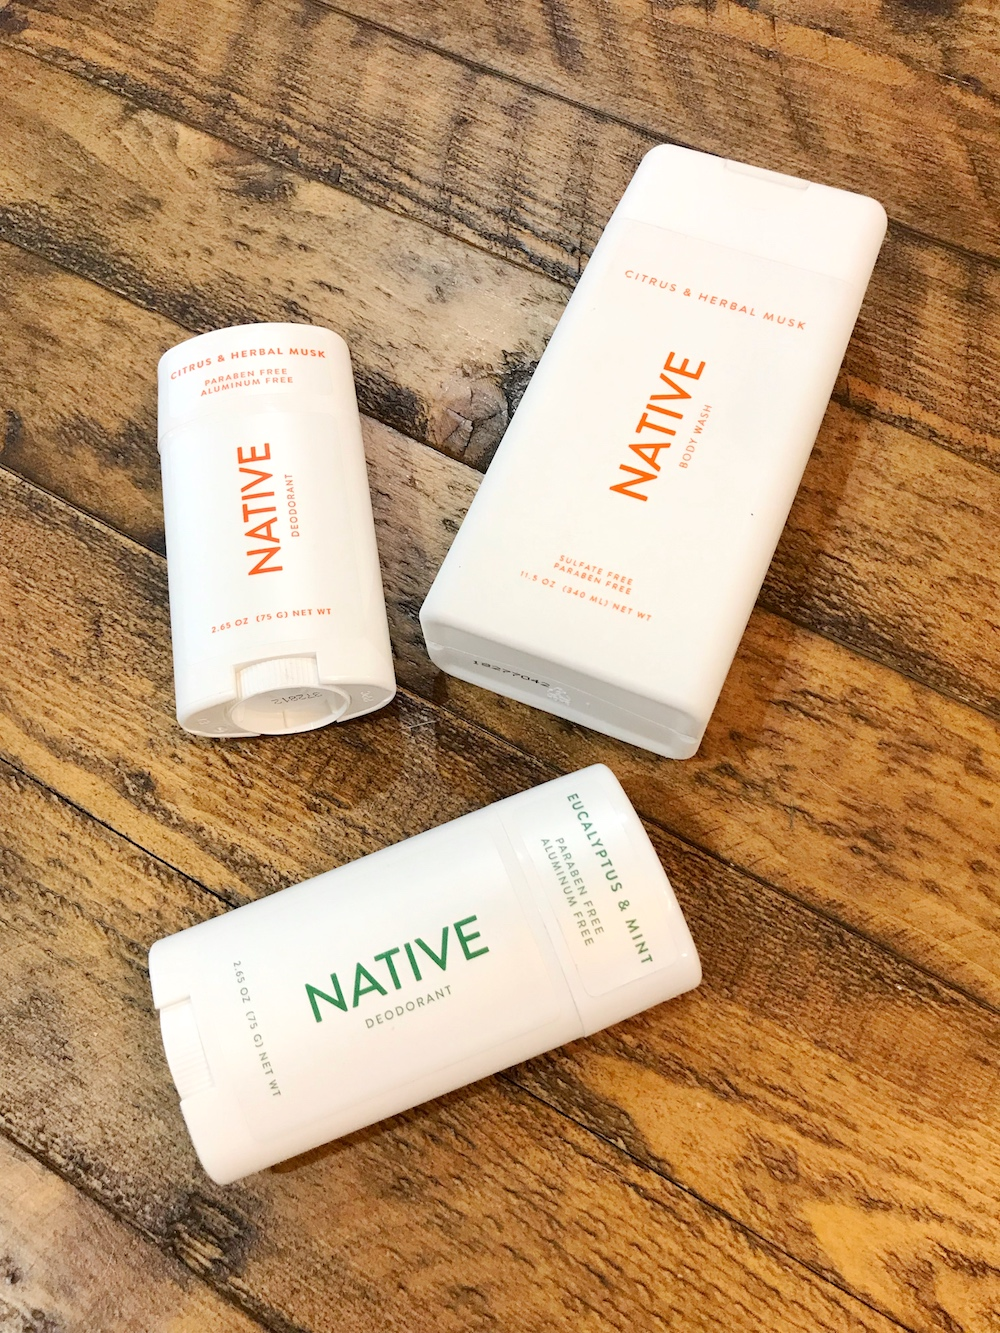 Native Deodorant - flatlay